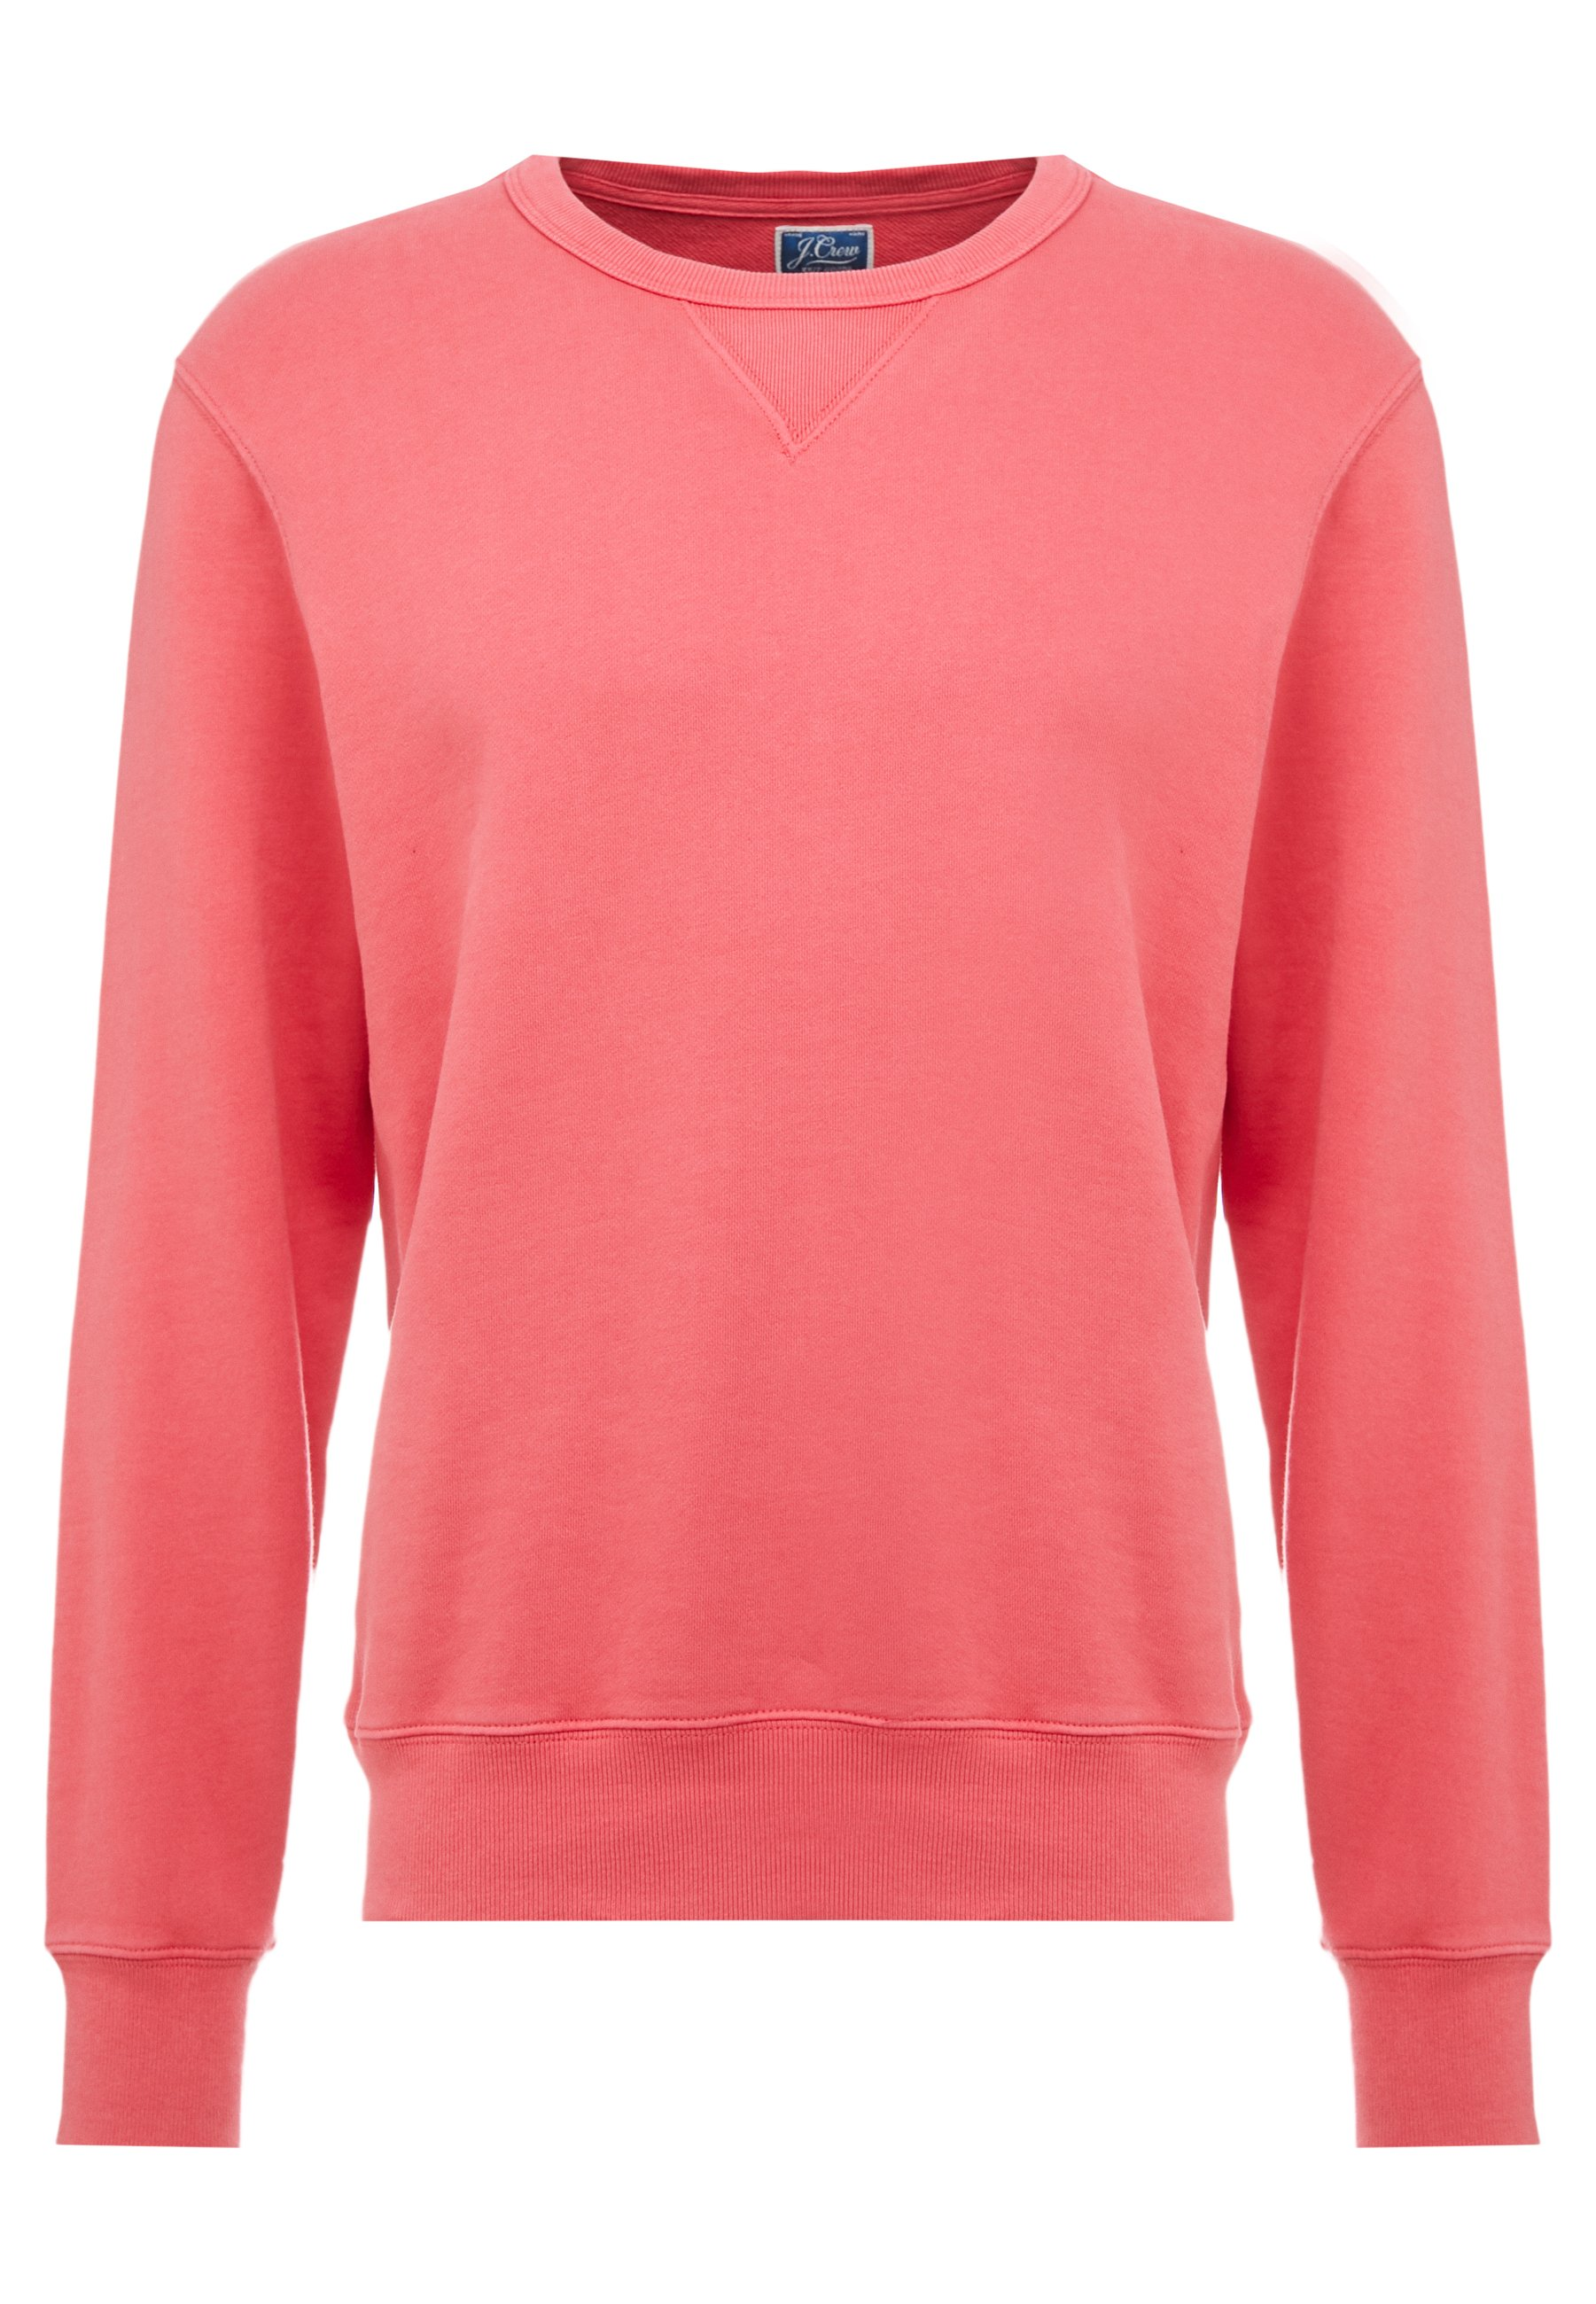 J.CREW CLASSIC FRENCH TERRY - Sweatshirt - moroccan red